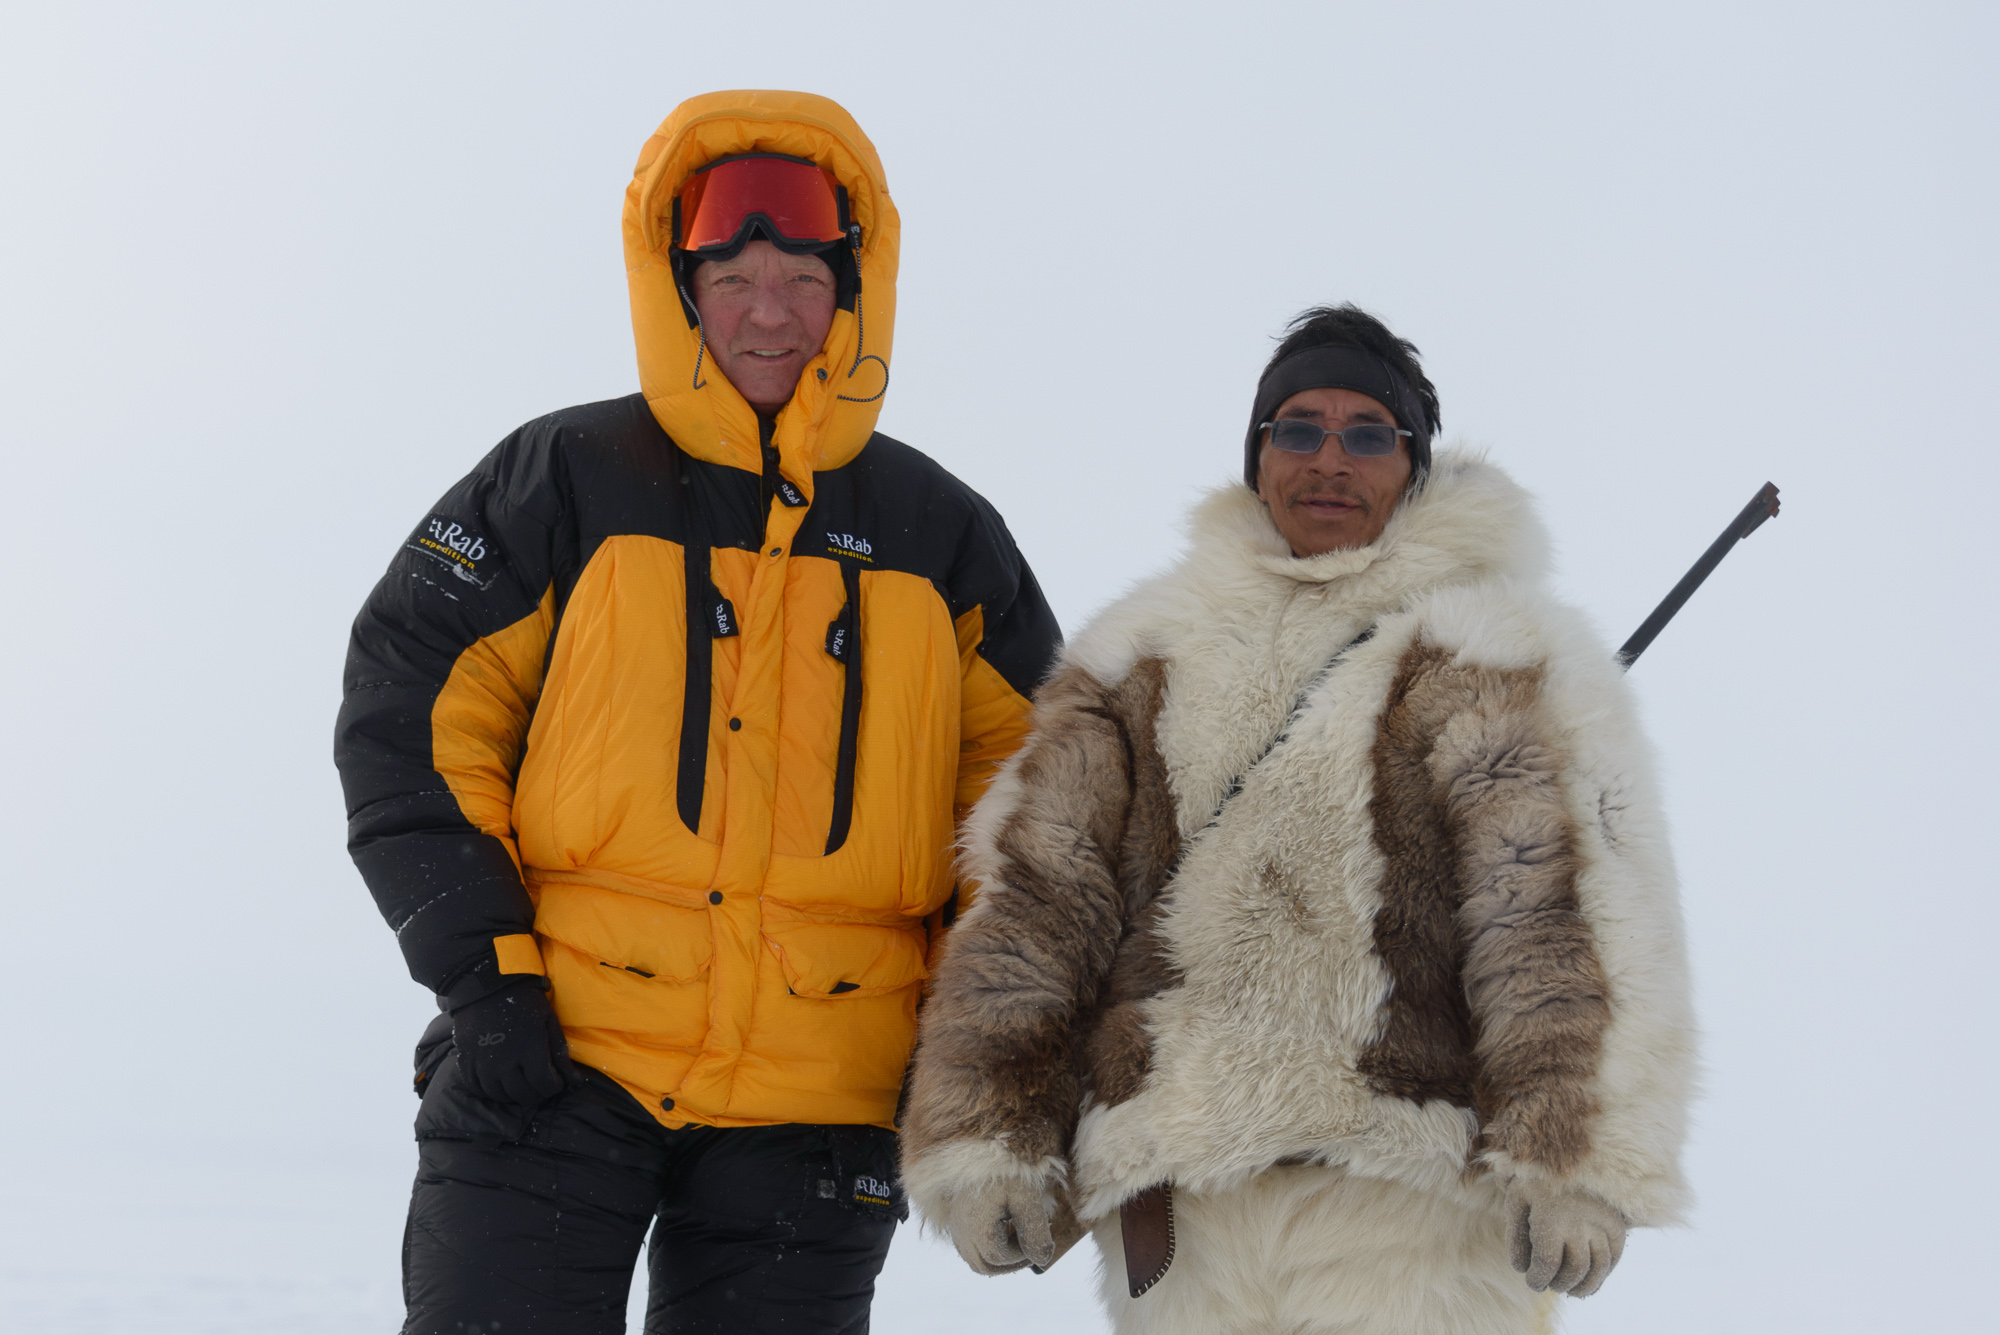 Steve and Tomas on Expedition on the Sea Ice of Inglefield Fjord, Thule, Greenland (click to enlarge).